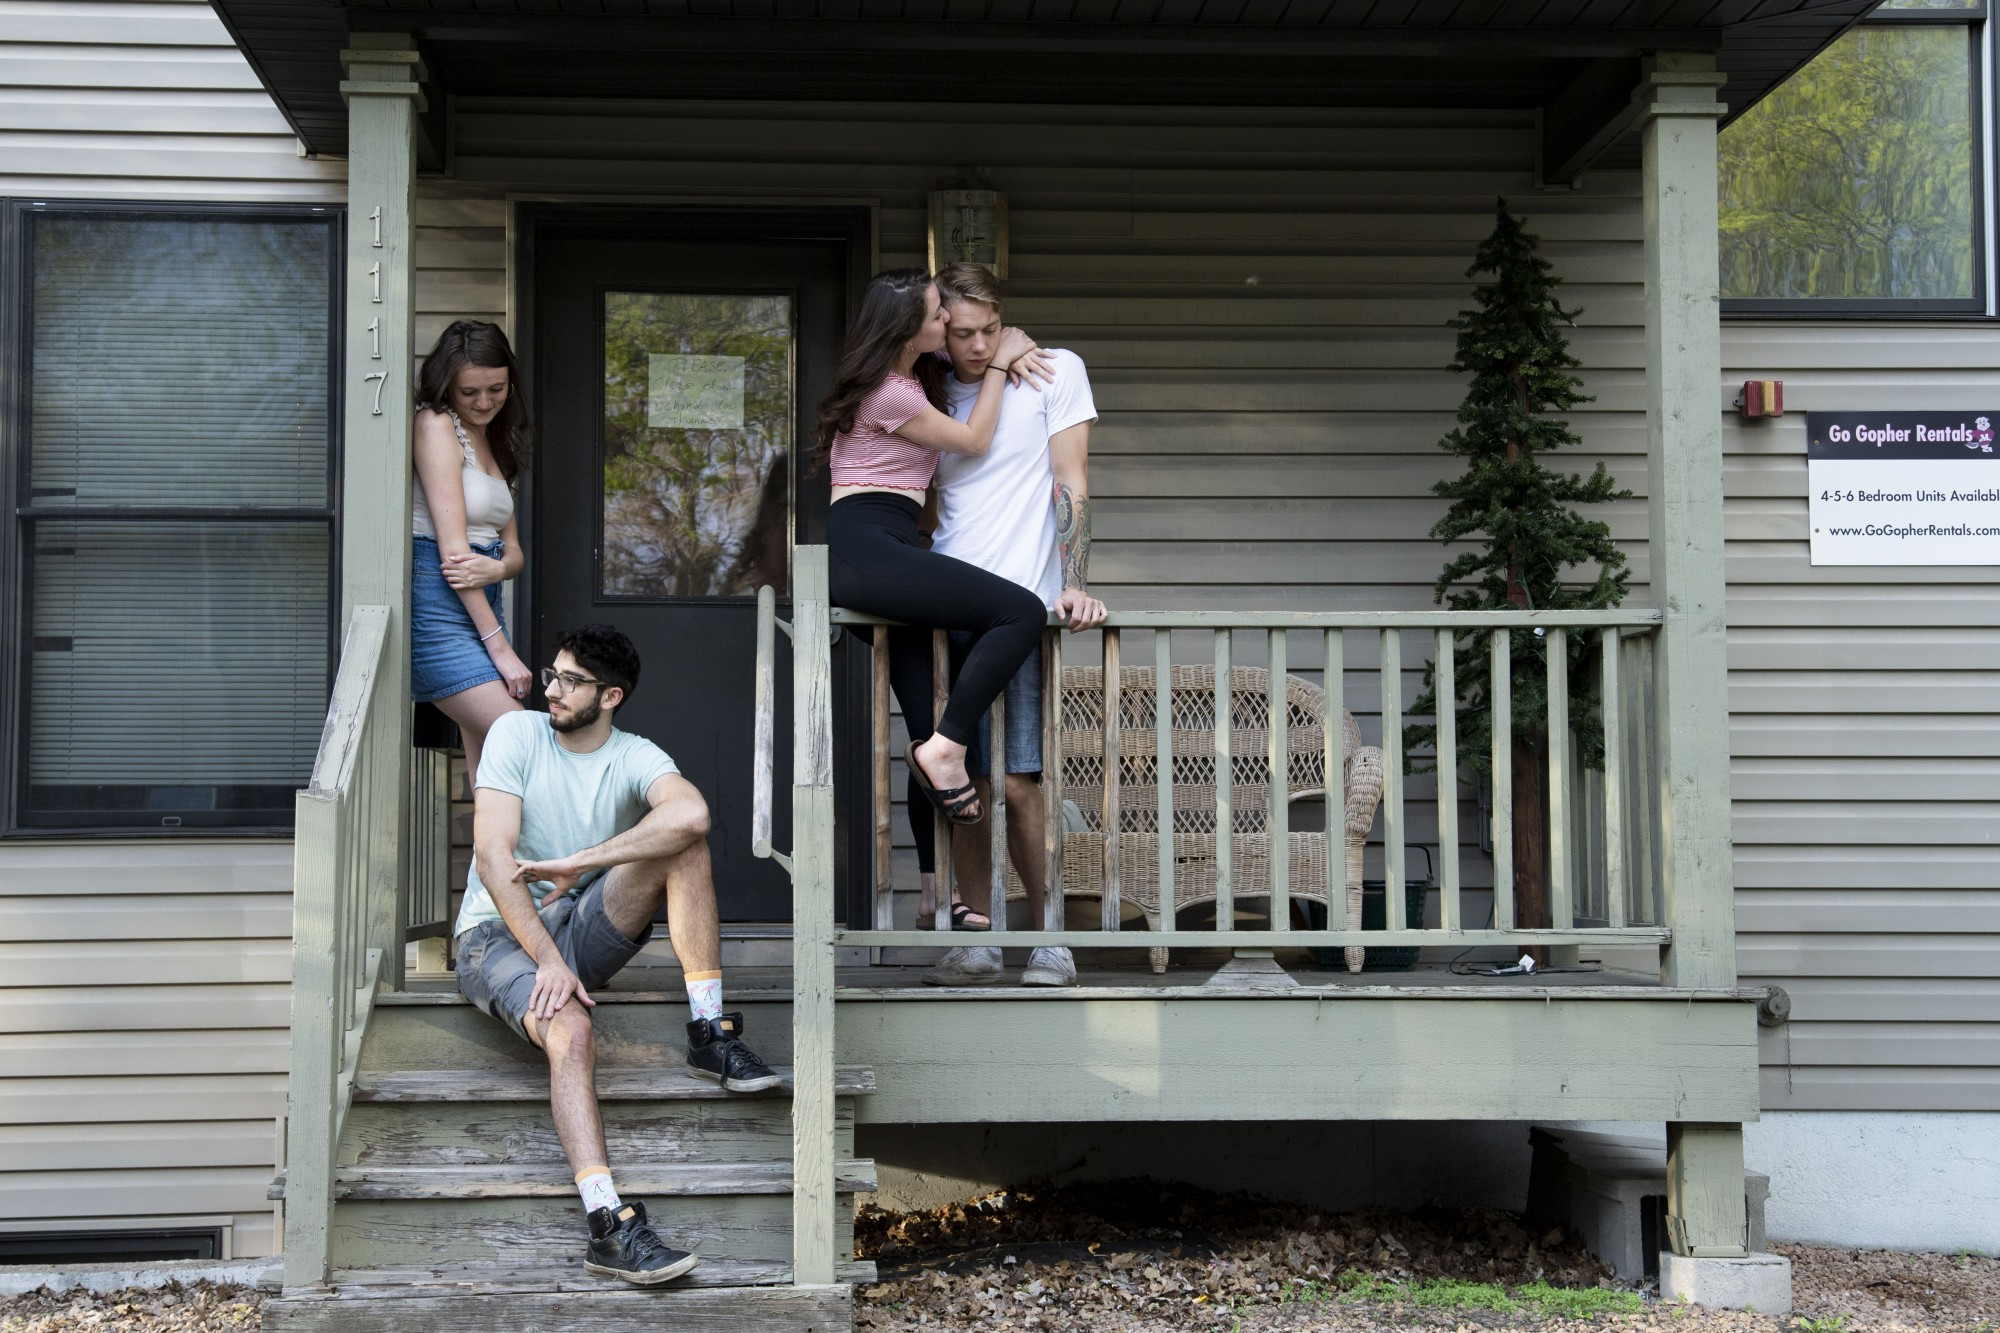 7:15 p.m. From left, Liz Wippler, Ben Javidan, Holland Griffin and Josiah Goodman pose for a portrait outside their home.